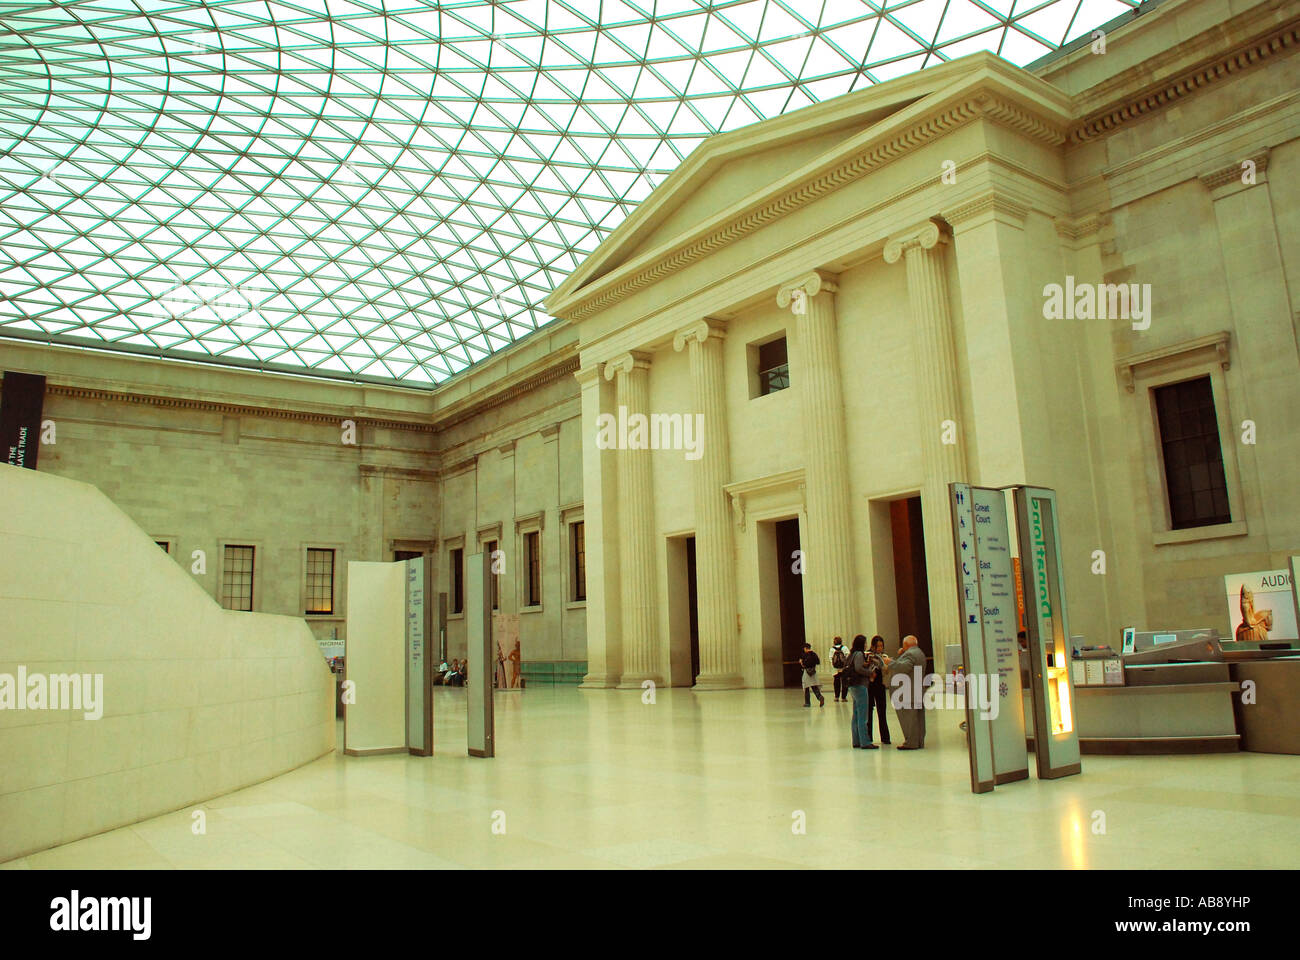 Innenhof British Museum, London UK Stockbild